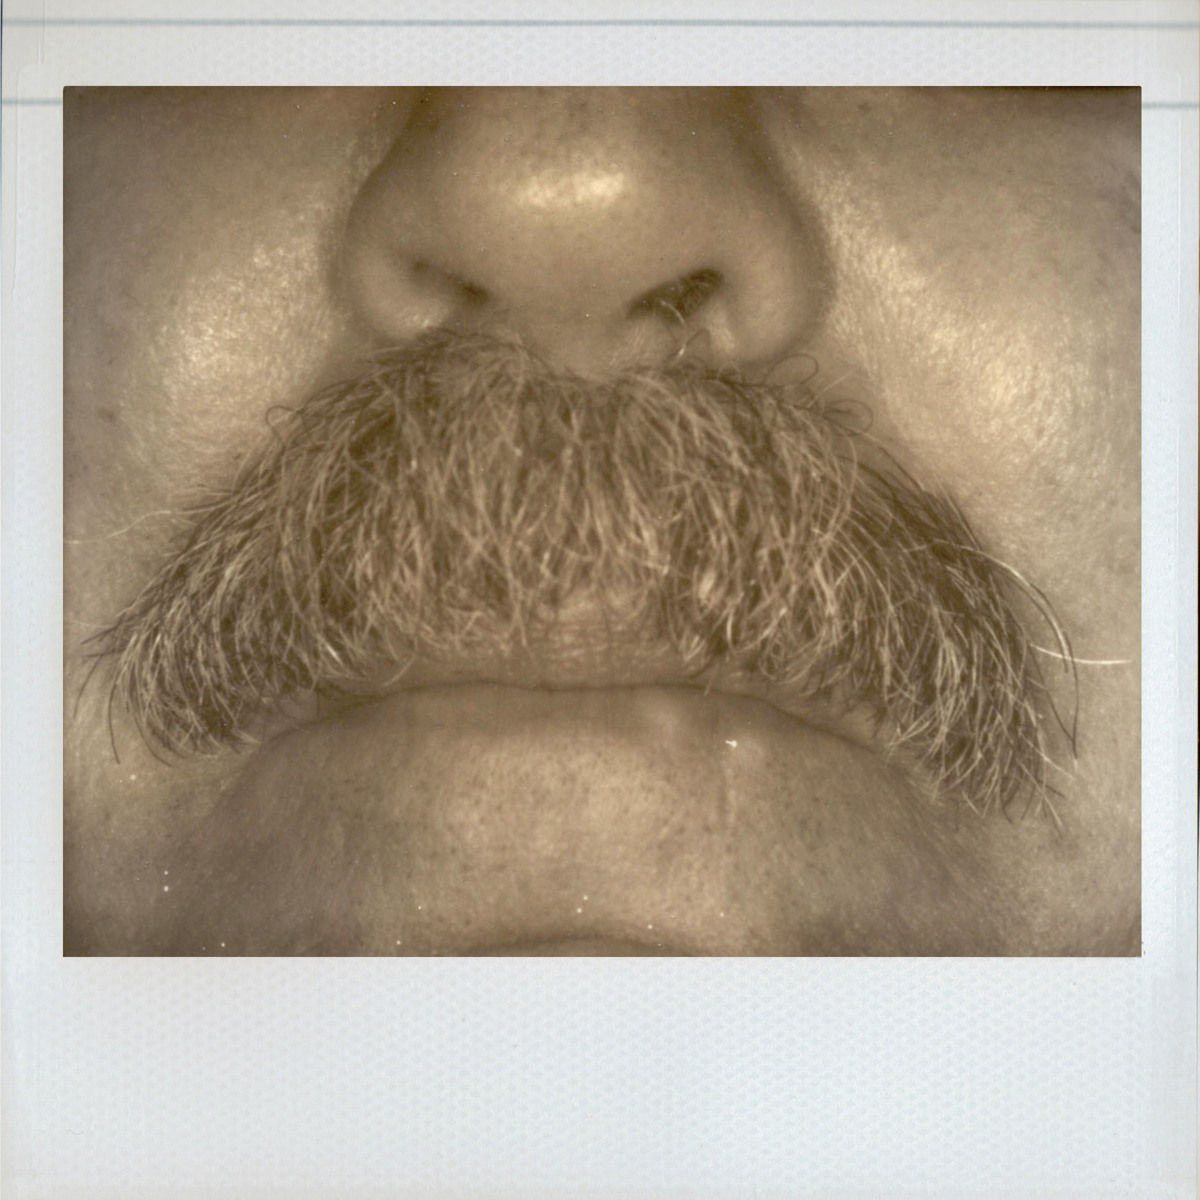 Impossible Mustache (large view)